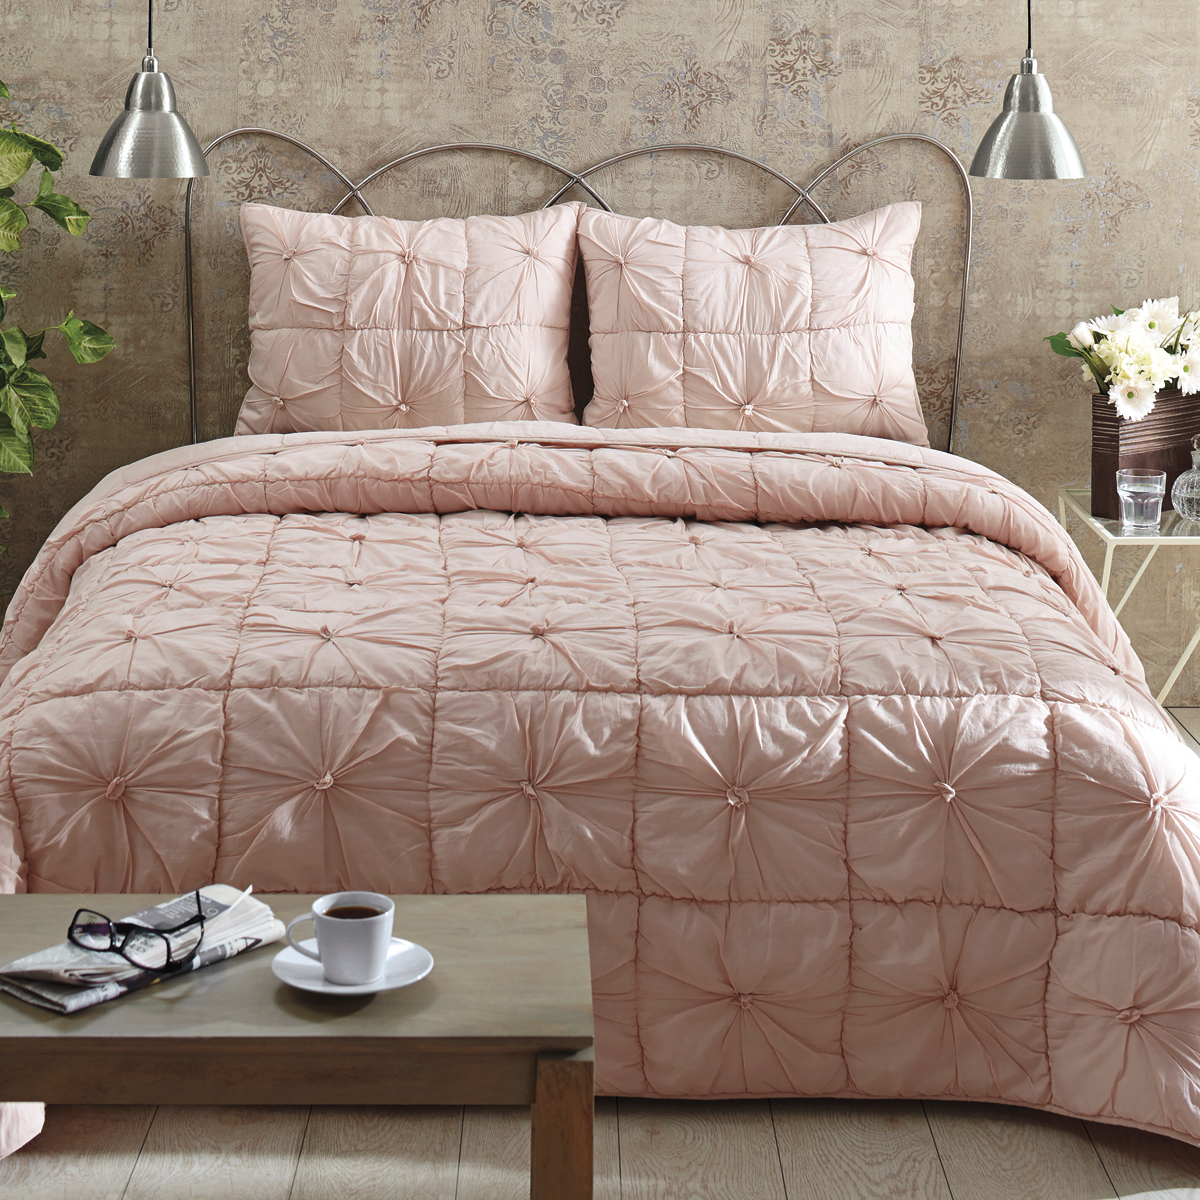 roxy vera bed medium teen secret girl victorias set beds bedding pink gold twin comforter in coral sets blush tumblr bag bradley size and billabong seventeen of target a jcpenney